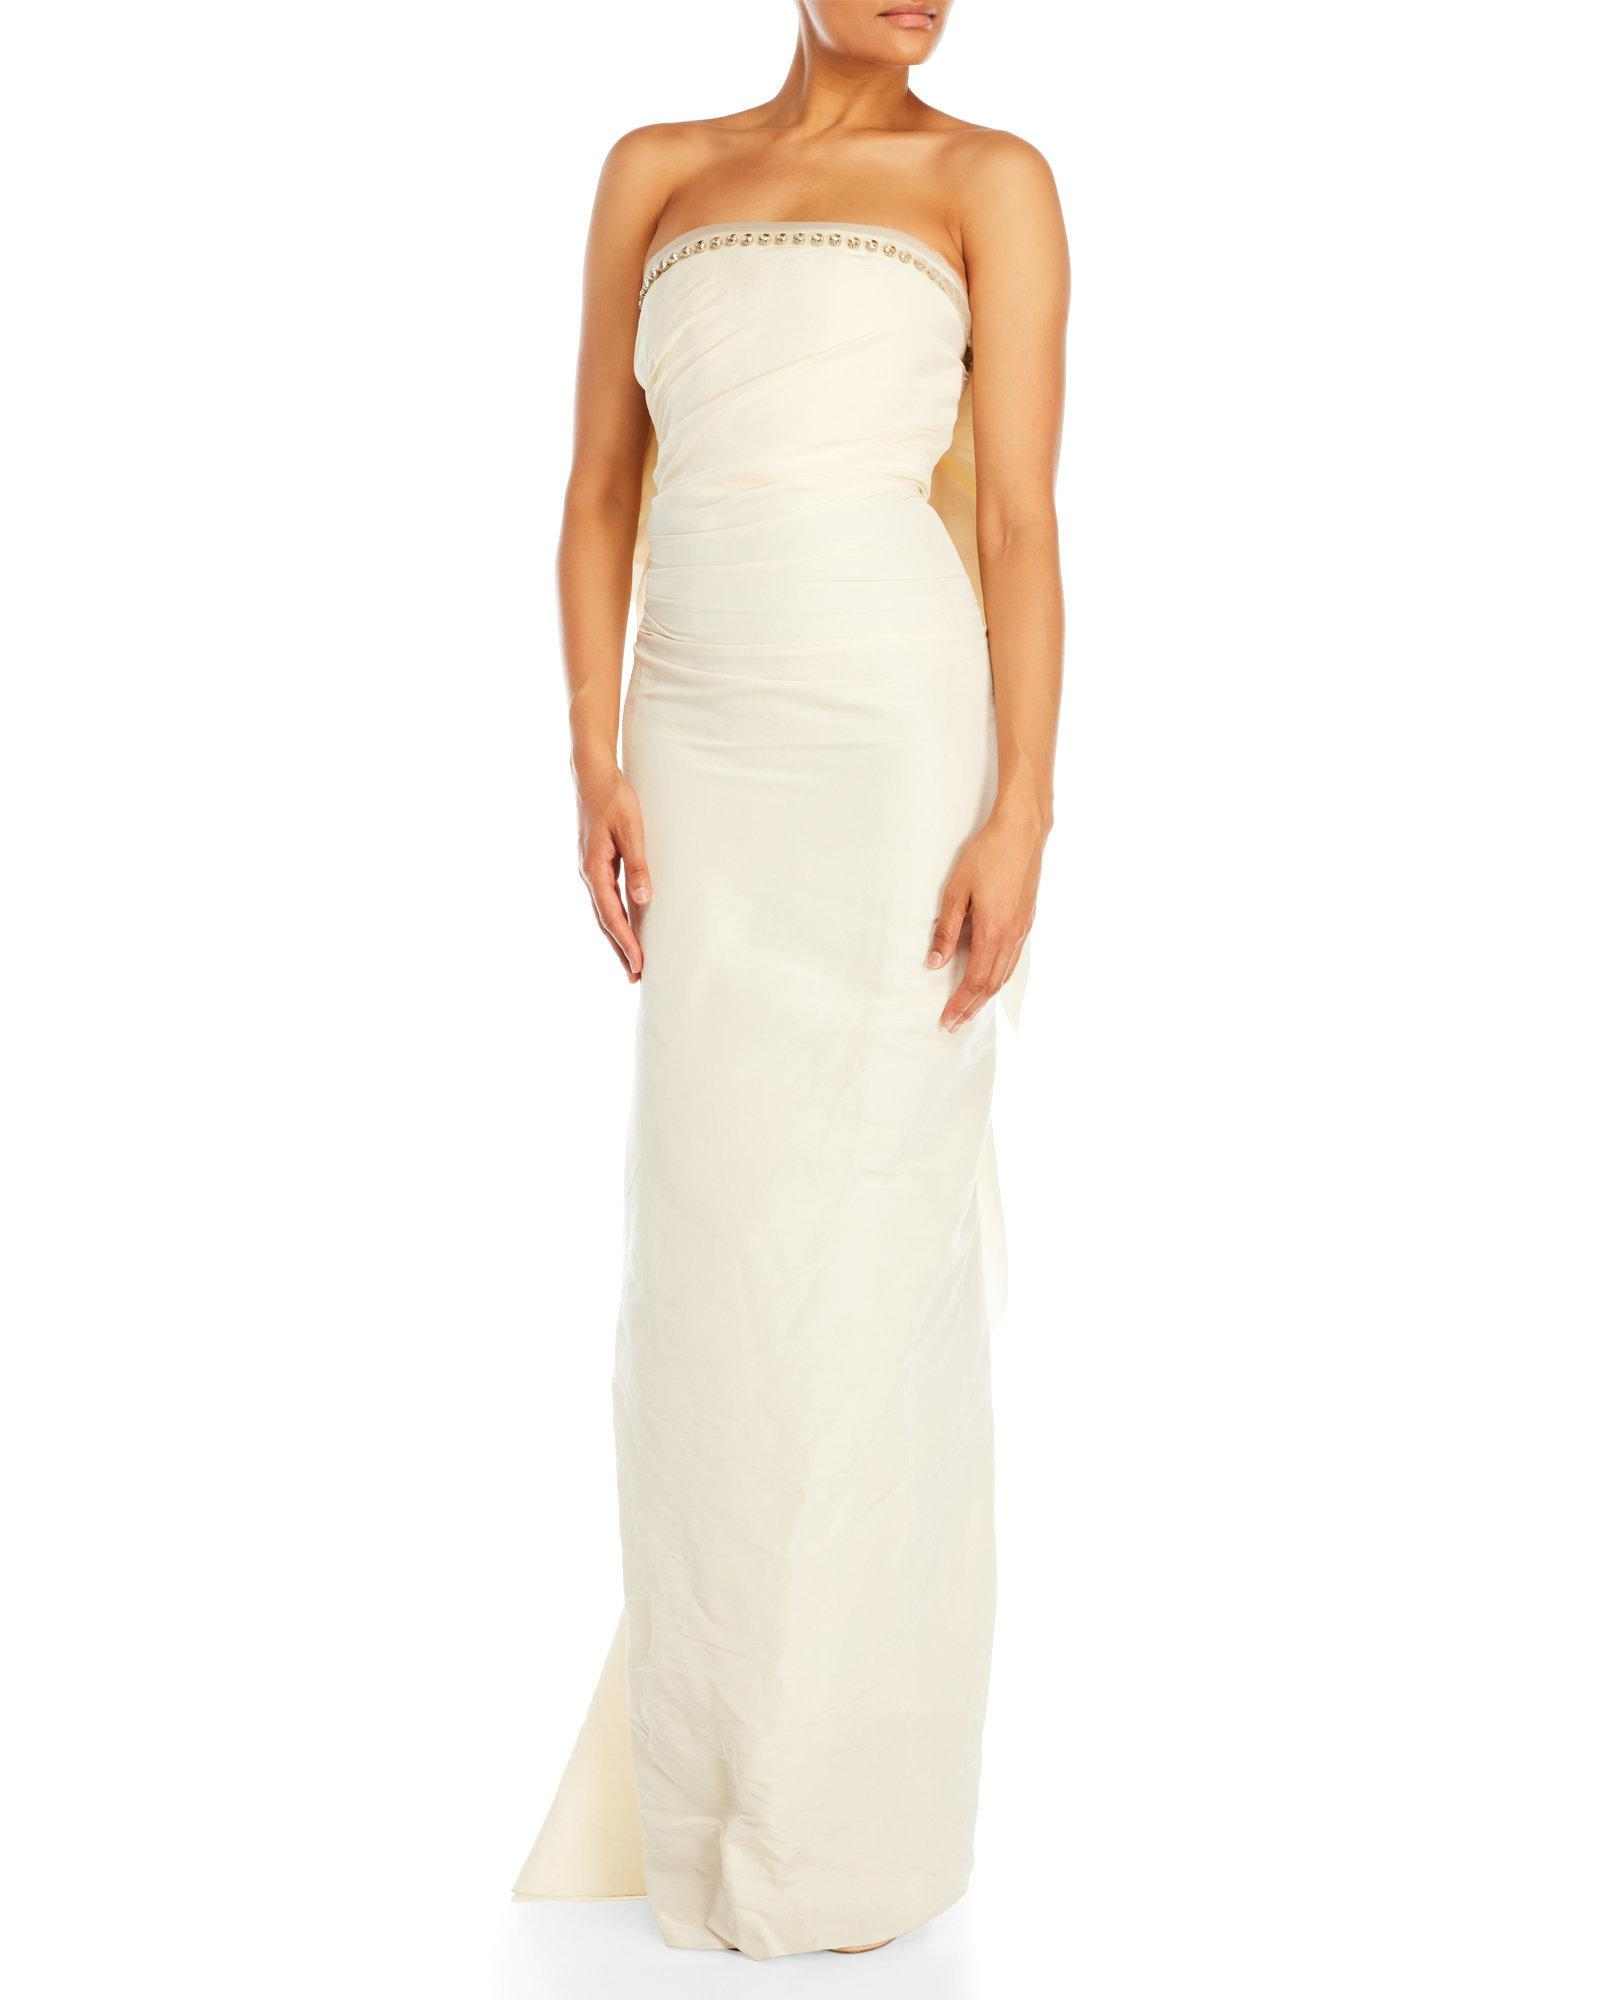 Lyst - Lanvin White Bow Back Gown in White